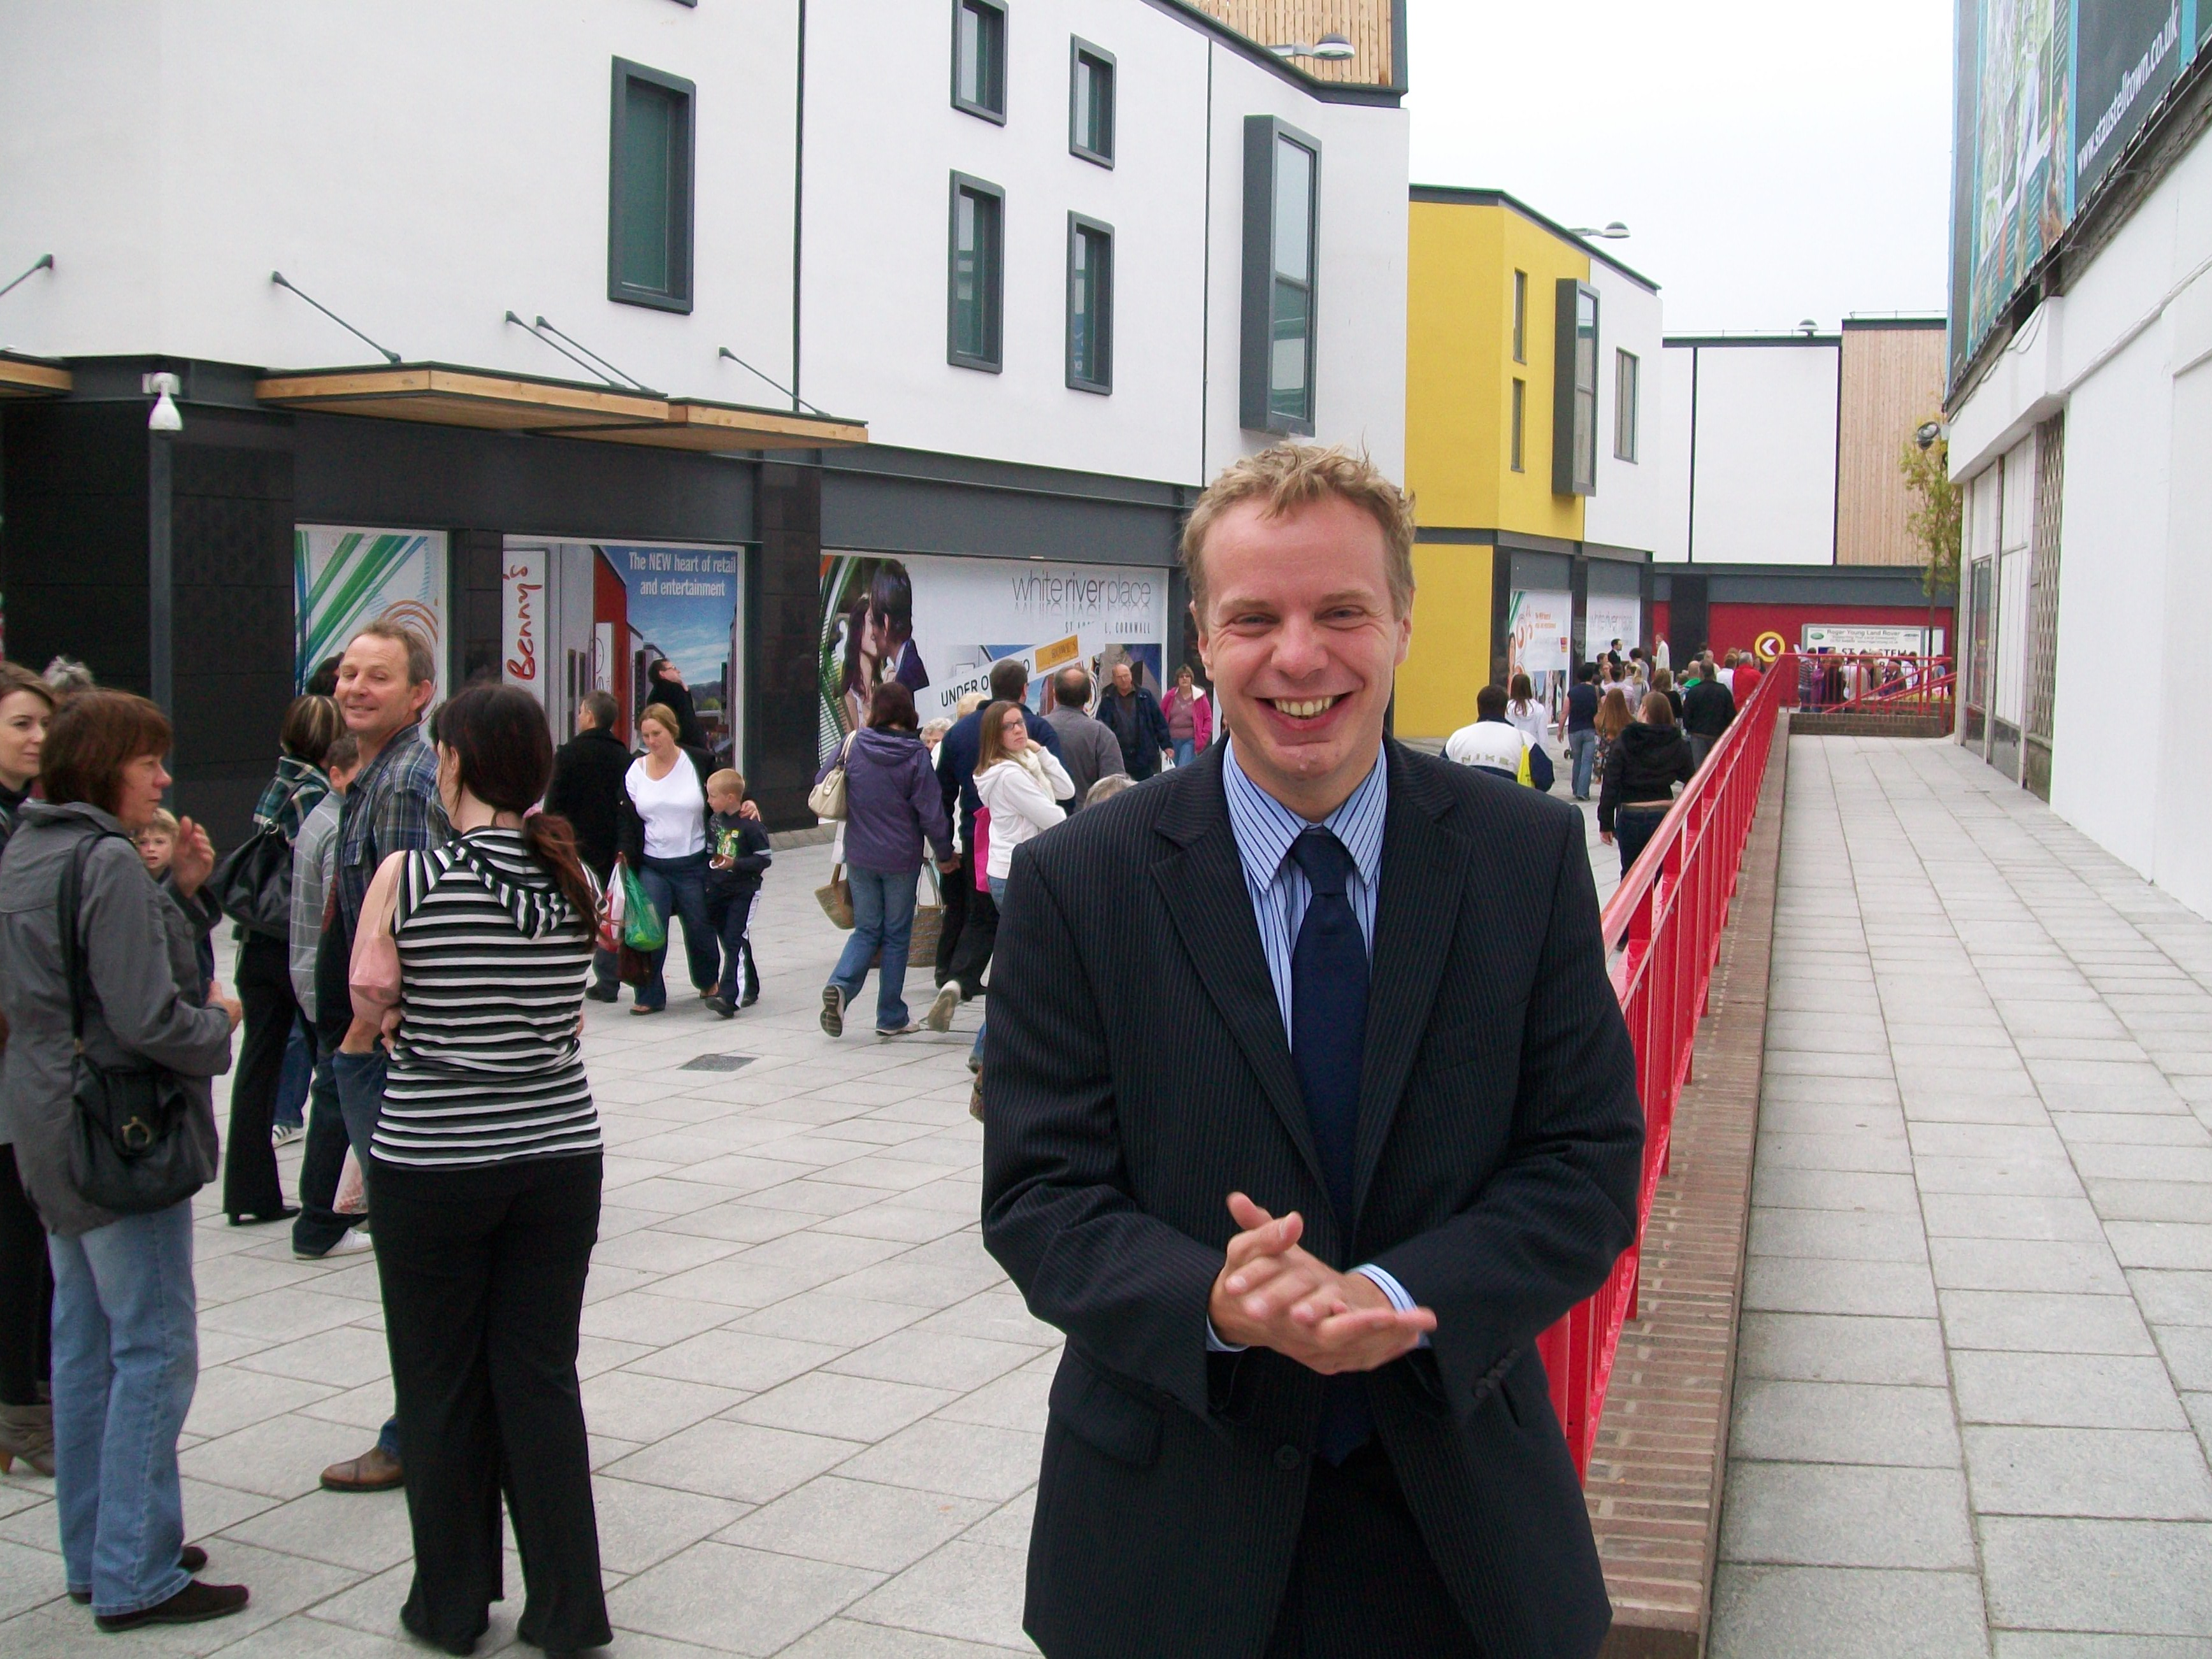 Stephen Gilbert Welcomes Publication of St Austell Retail Survey